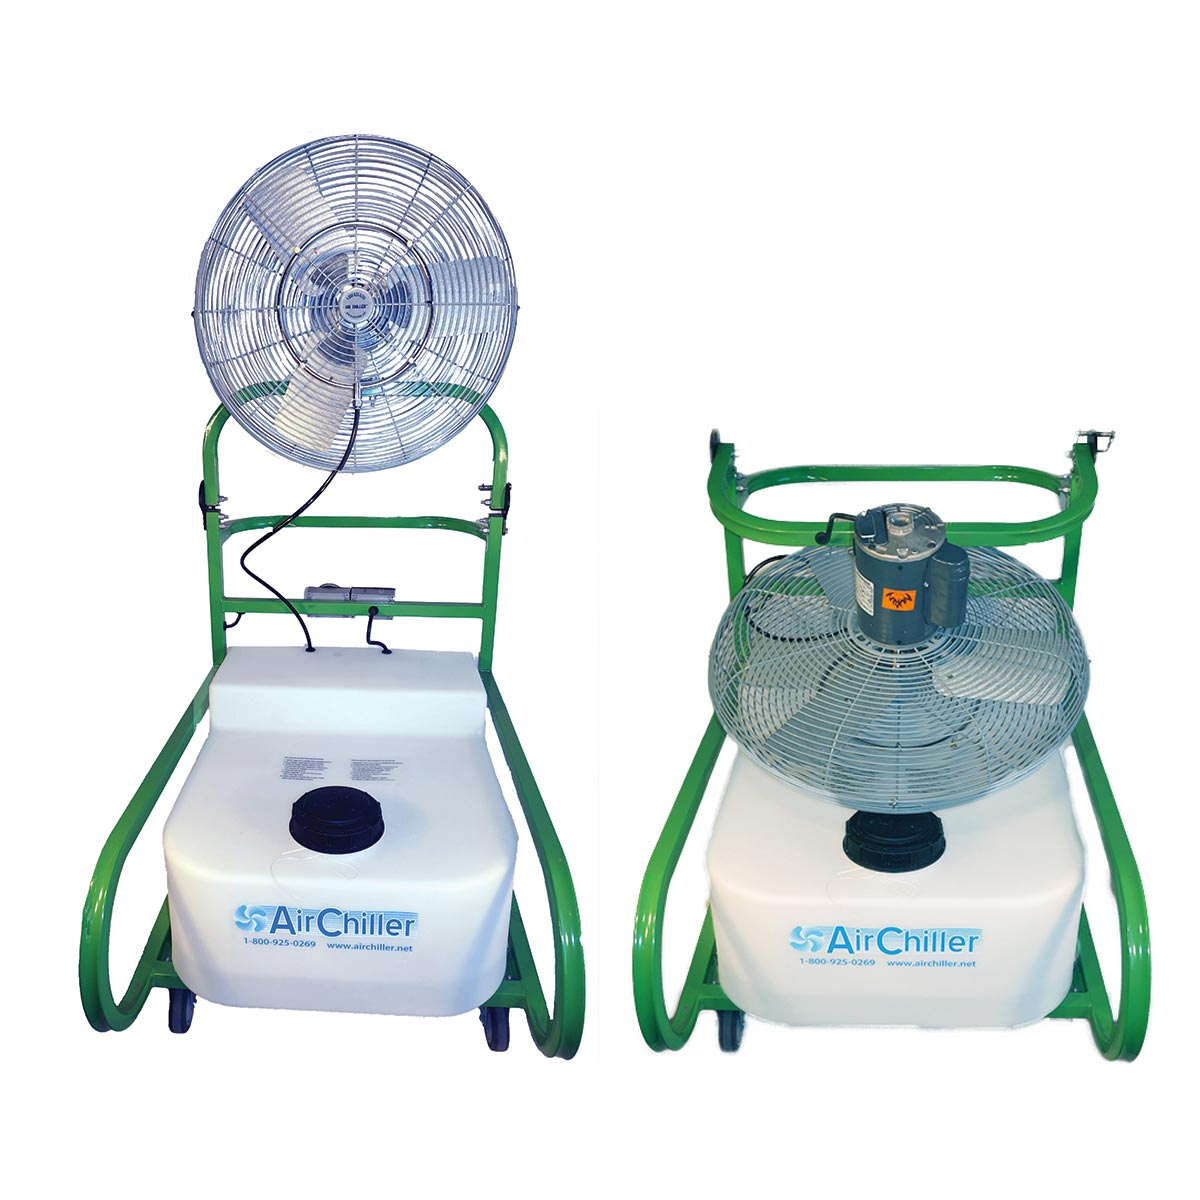 Air Chiller FD-24 Inch Misting Fan Evaporative Cooler 12000 cfm 32 gallon Fold Down Top